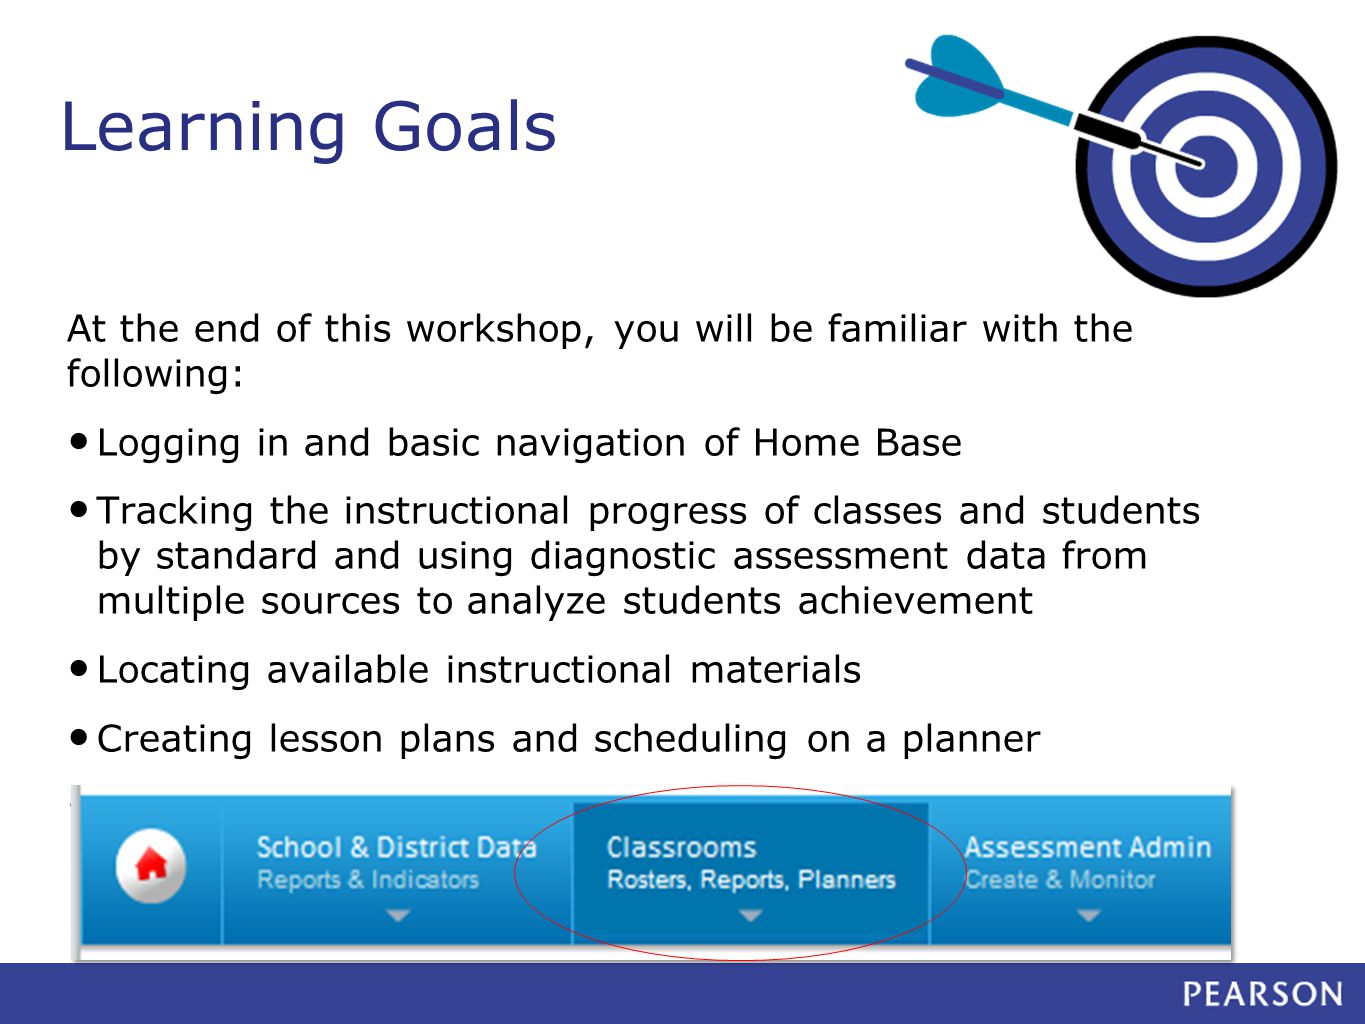 Learning Goals At the end of this workshop, you will be familiar with the following: Logging in and basic navigation of Home Base Tracking the instructional progress of classes and students by standard and using diagnostic assessment data from multiple sources to analyze students achievement Locating available instructional materials Creating lesson plans and scheduling on a planner Strategies for turnaround training